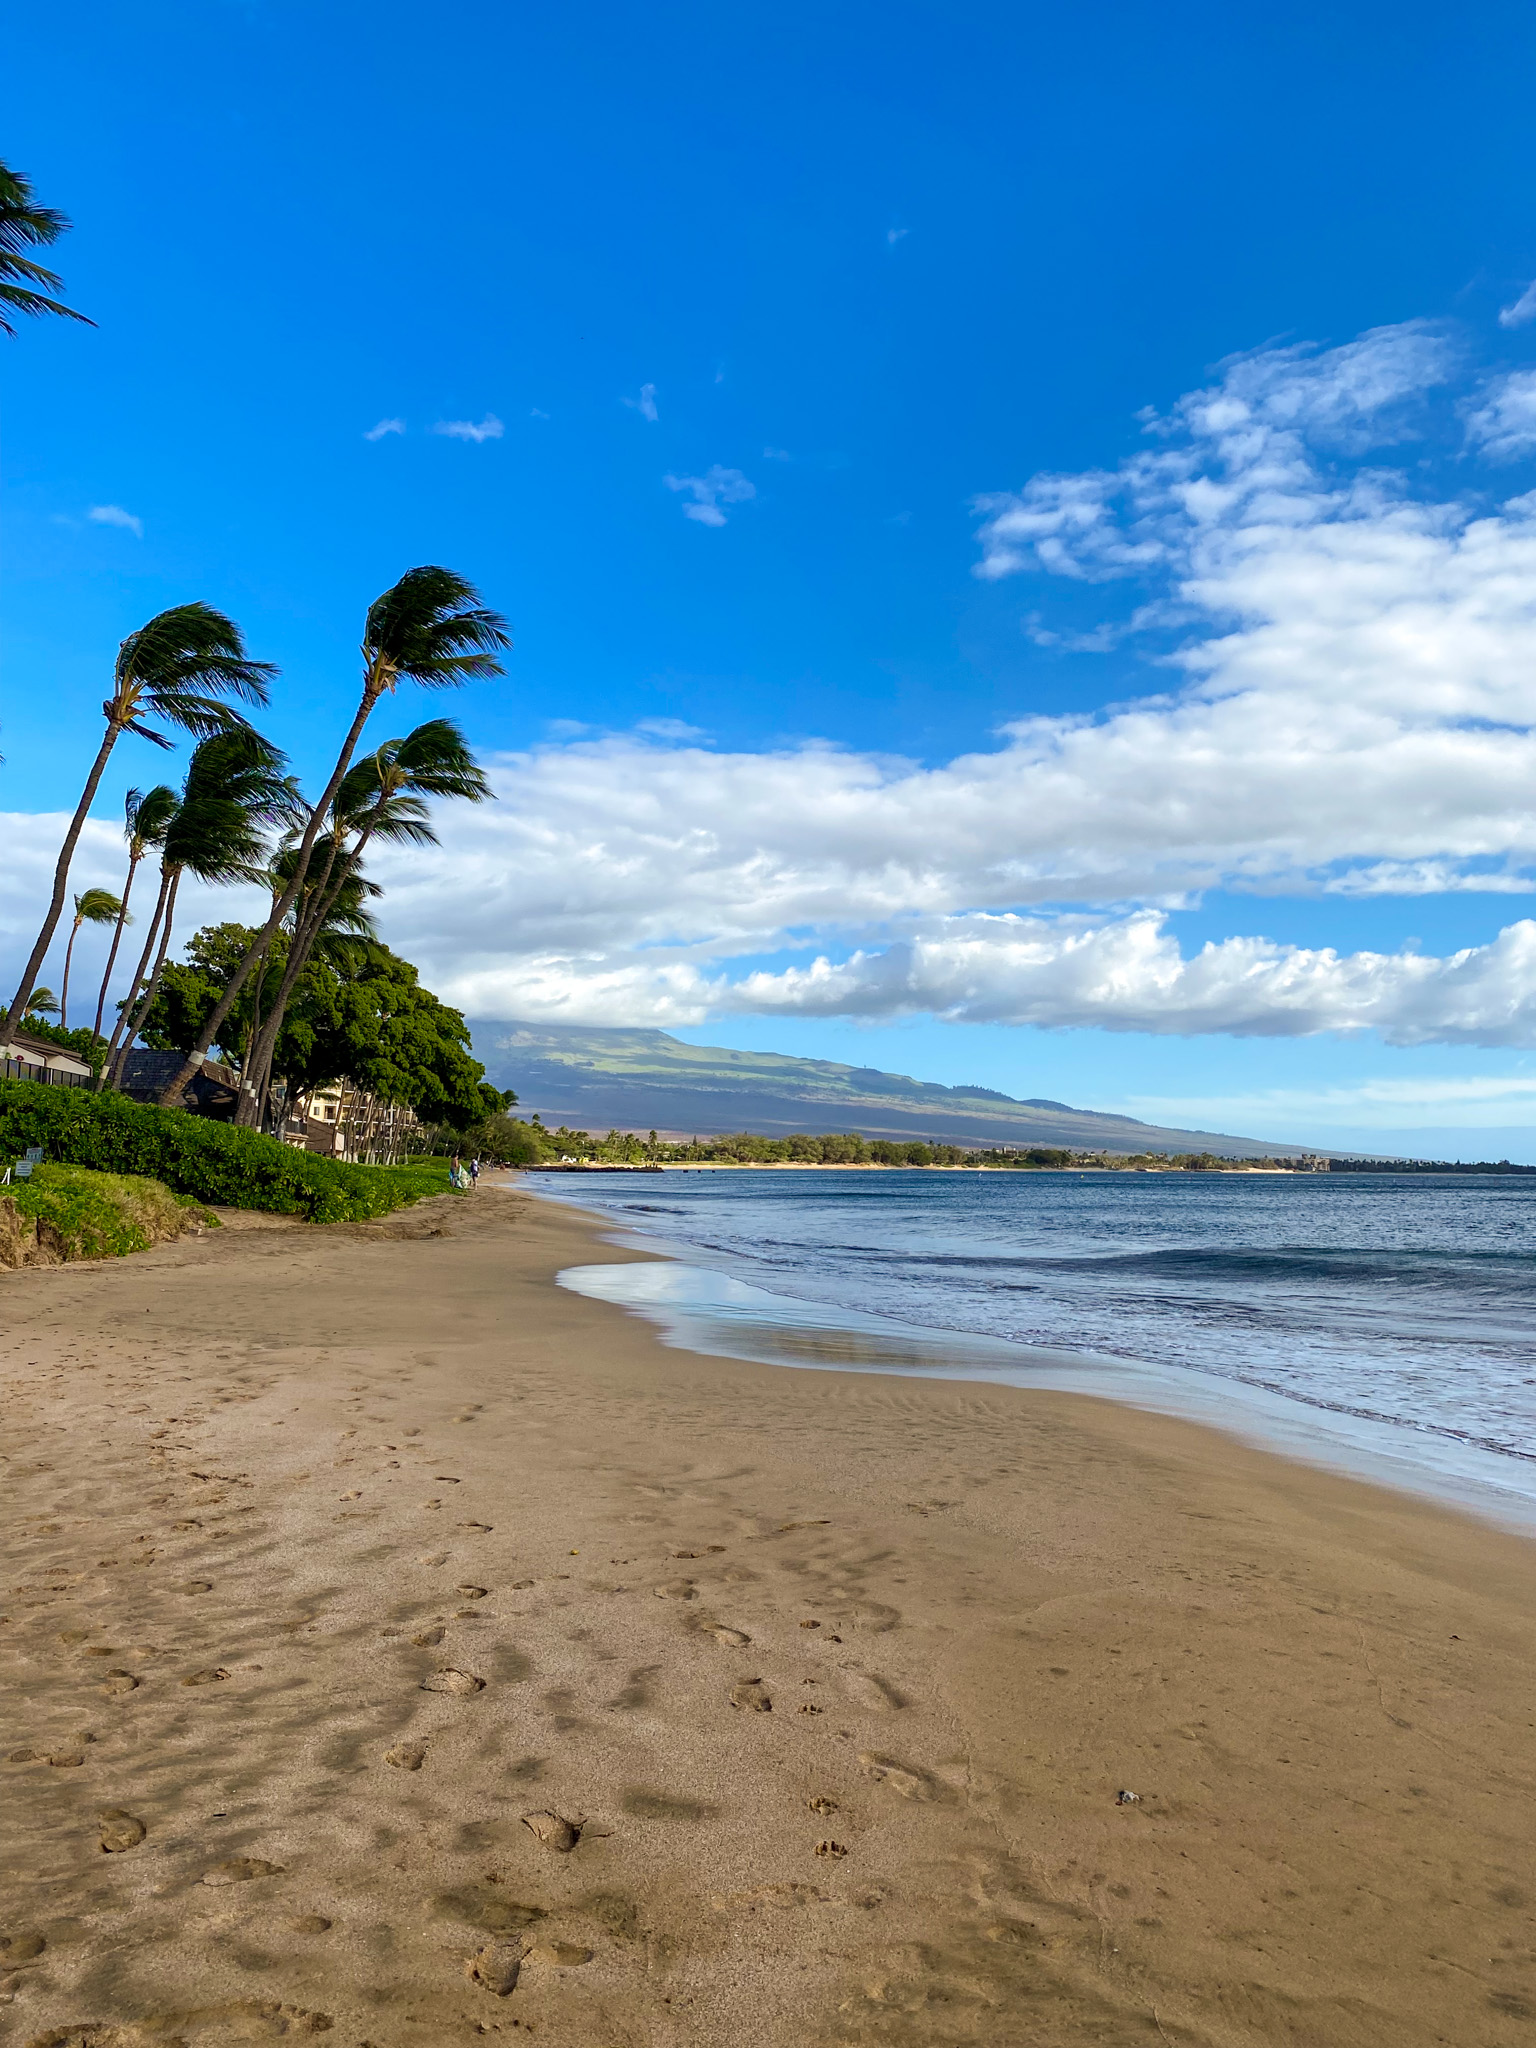 traveling to hawaii maui, beach front stay hawaii maui, maui covid travel, luxury travel, black girl travel guide